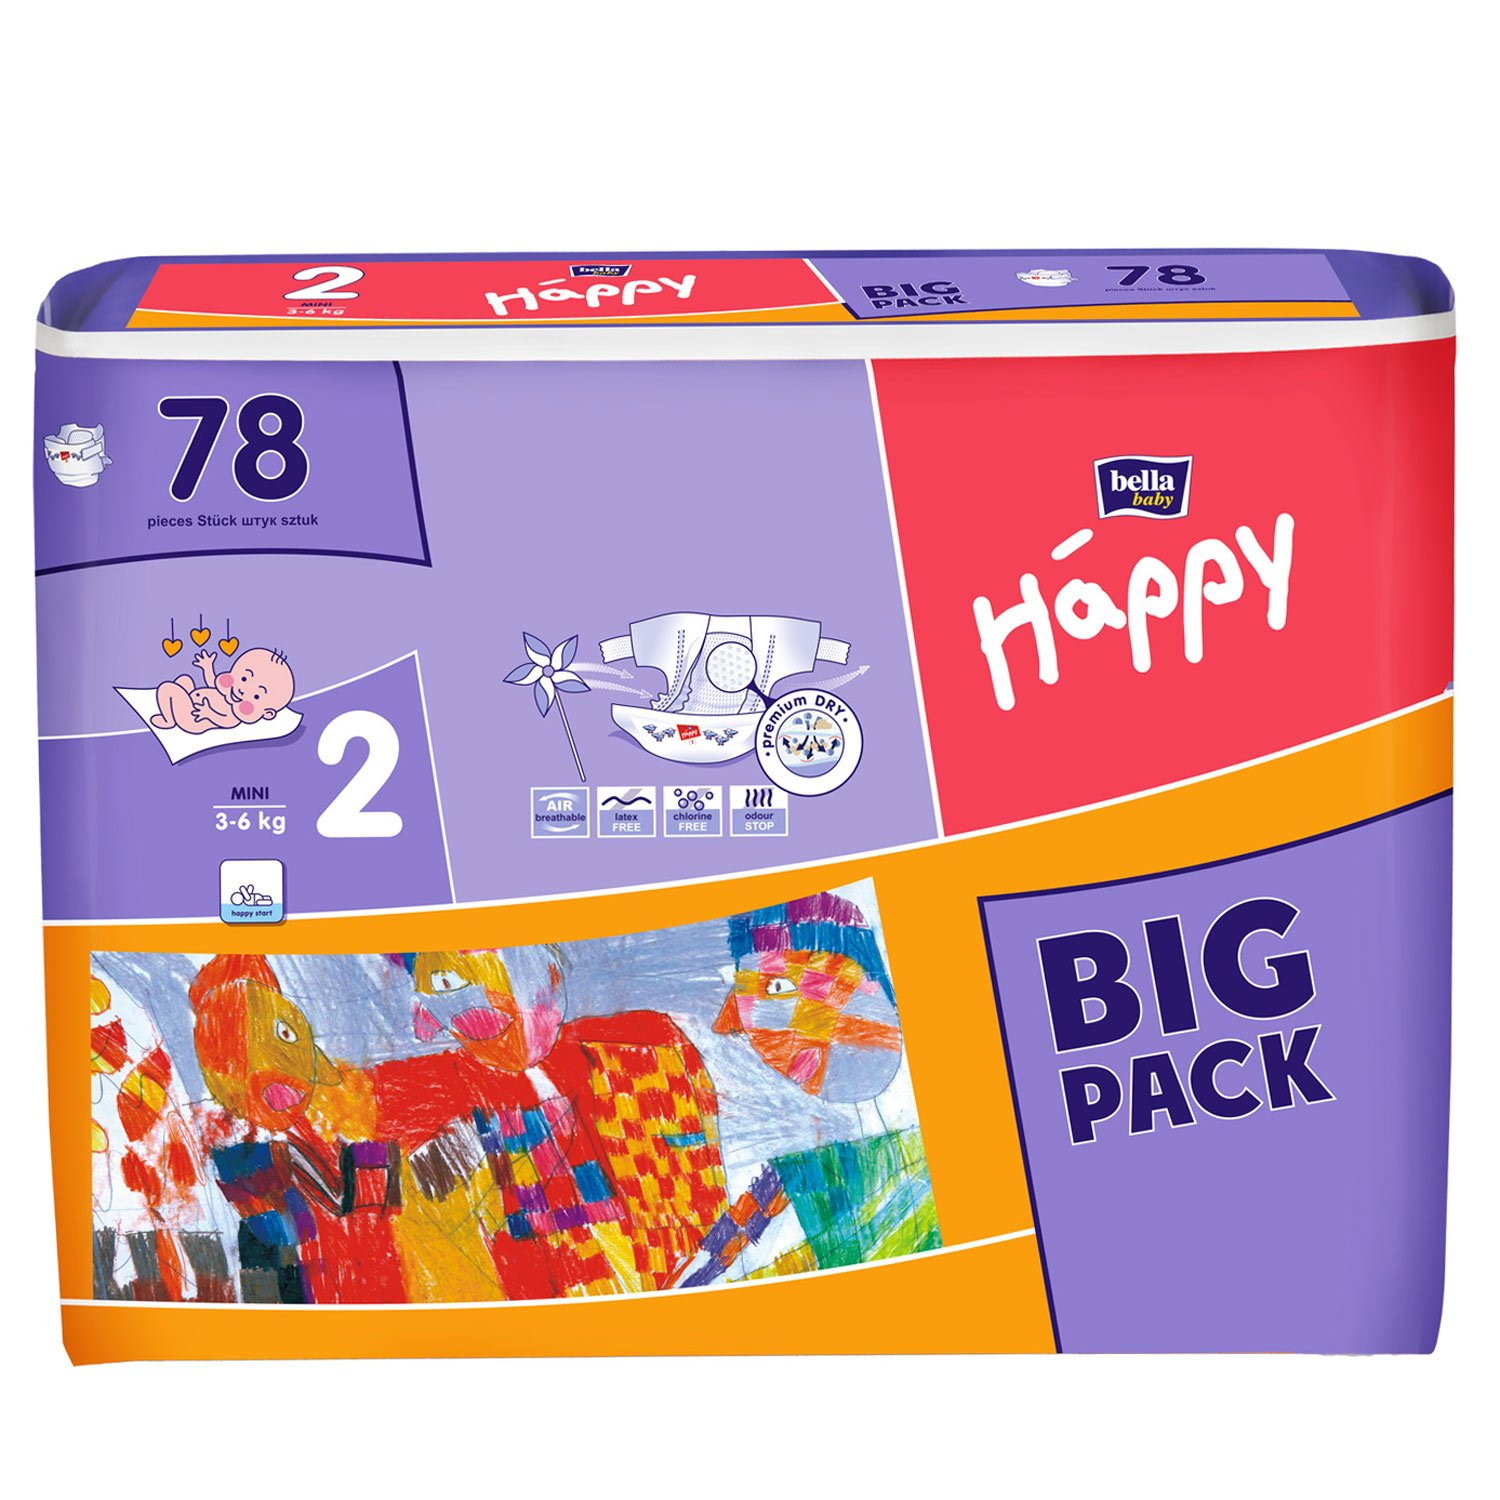 Bella Happy Mini 3-6 kg BIG PACK 78ks